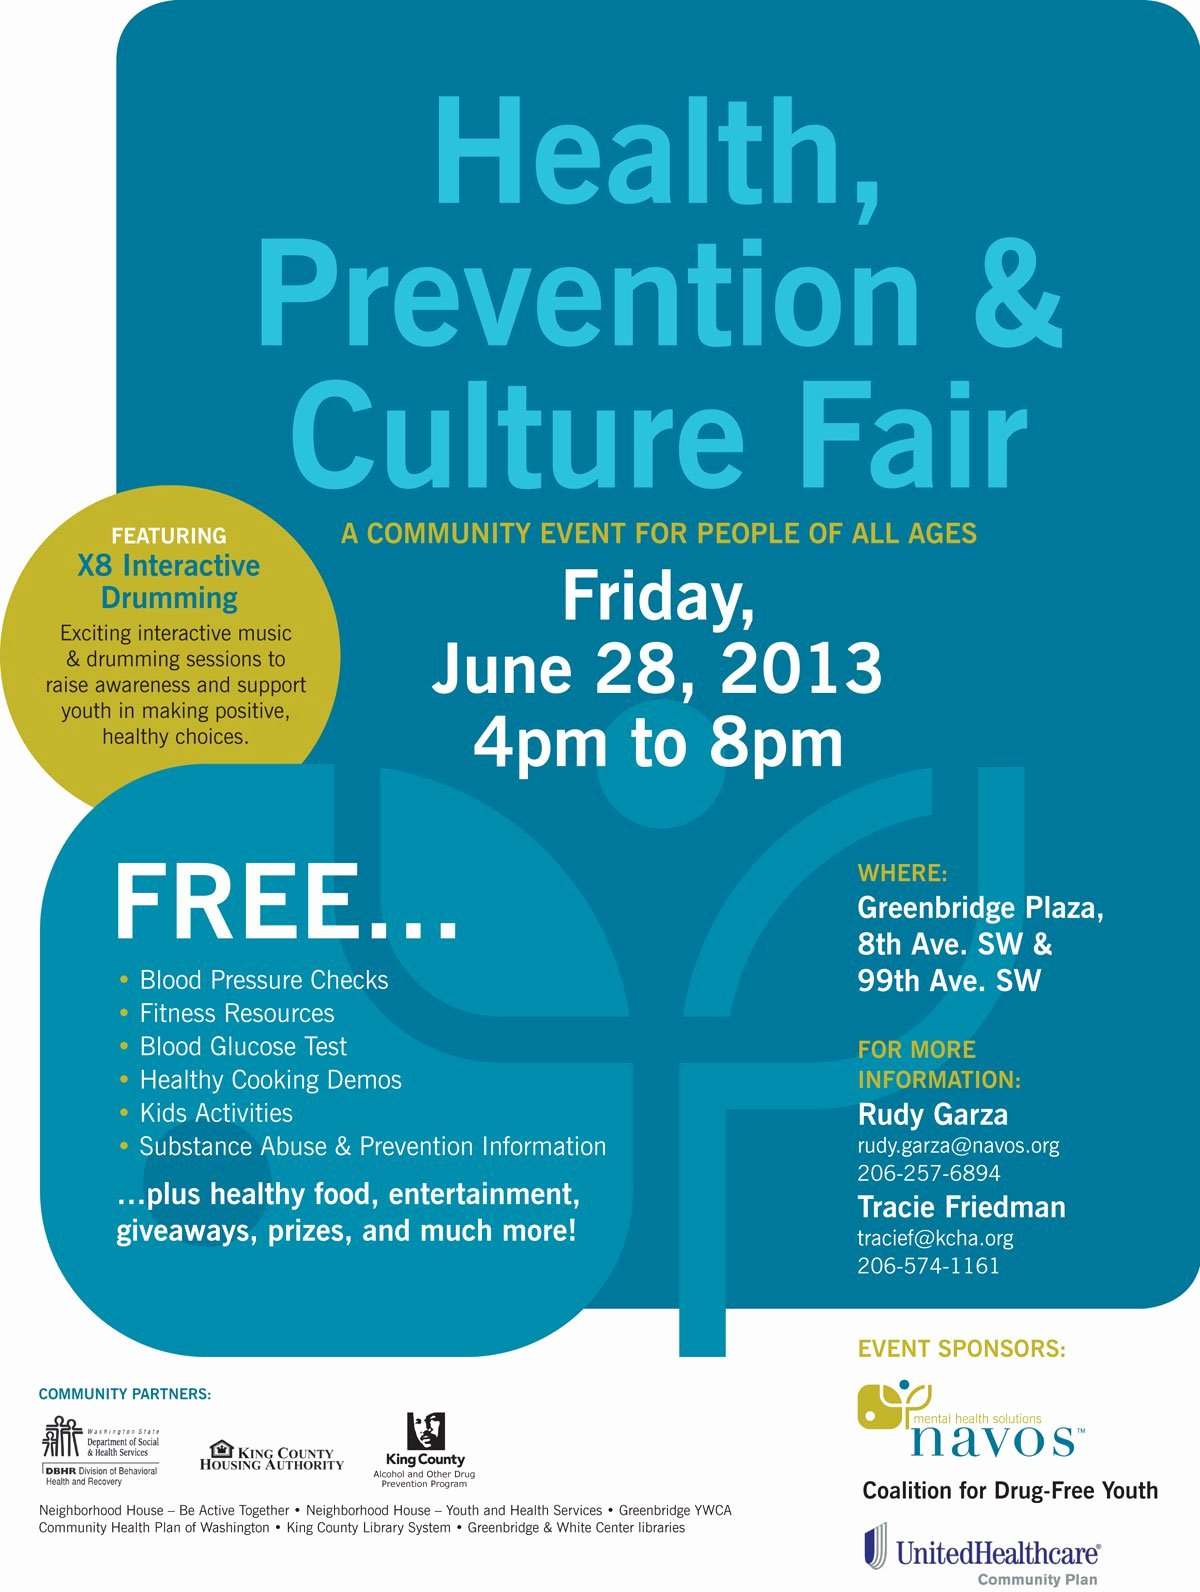 Navos Holding Health Prevention & Culture Fair at